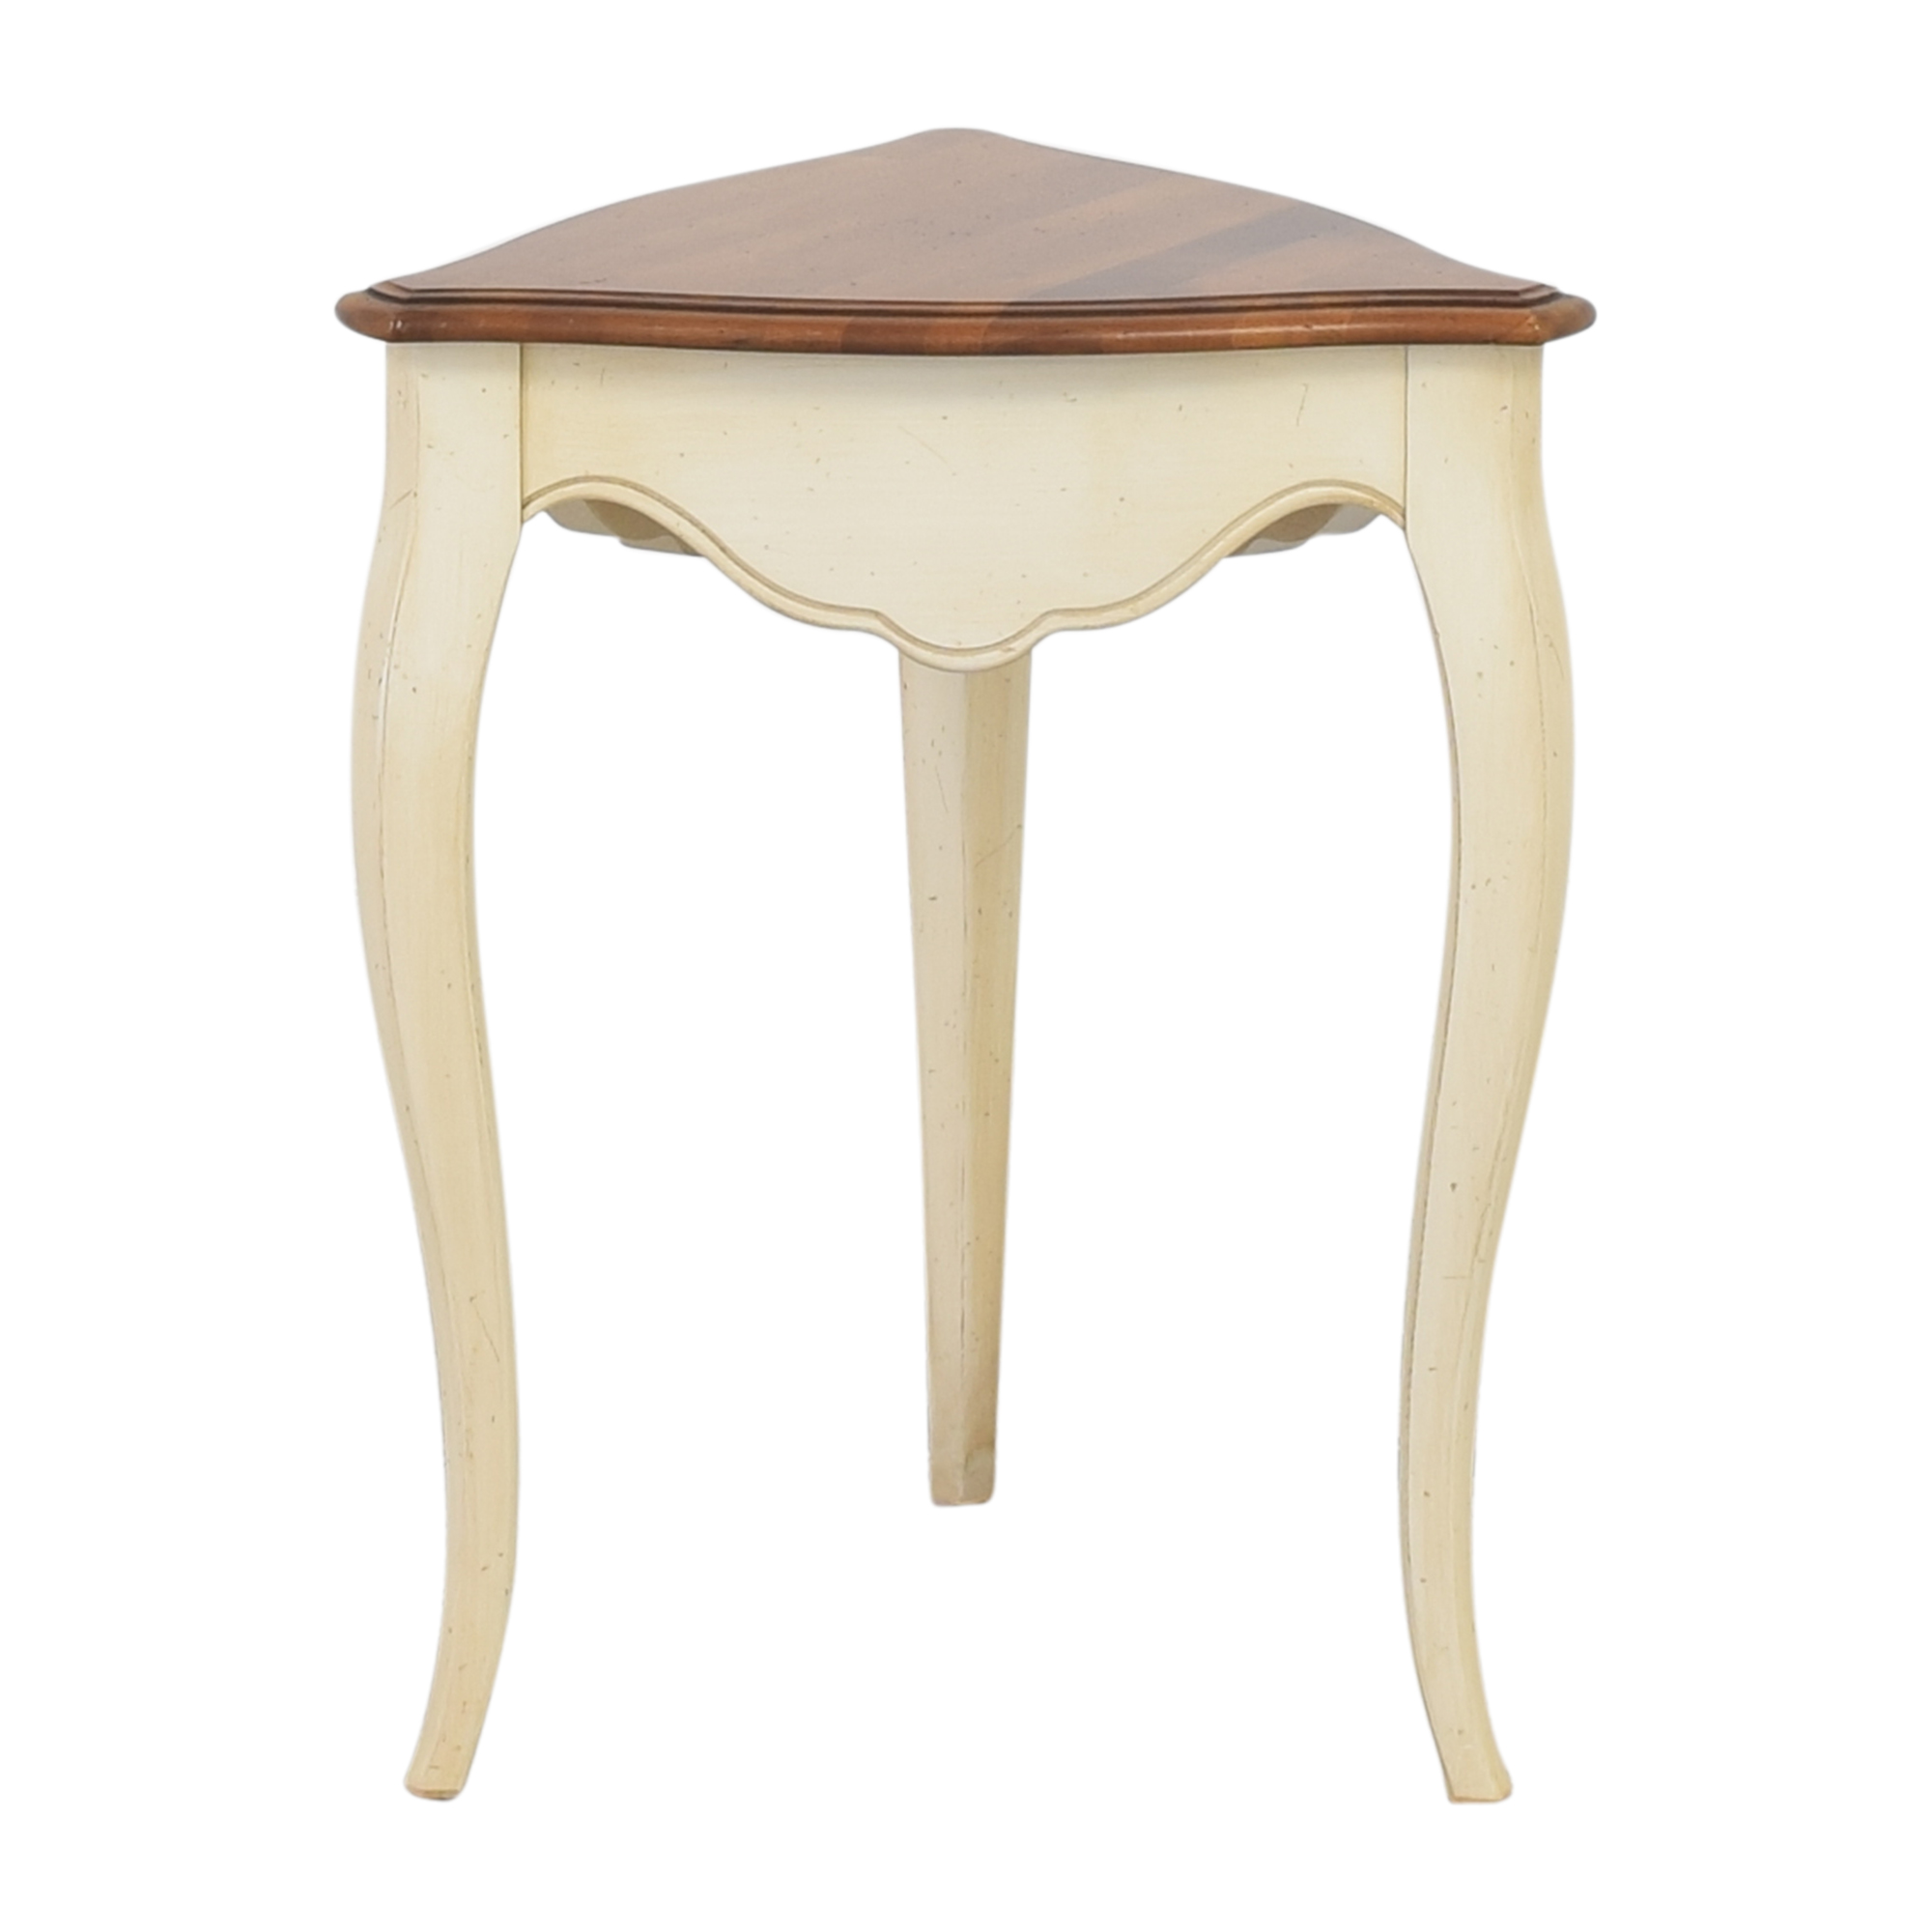 Ethan Allen Ethan Allen Occasional Table Tables